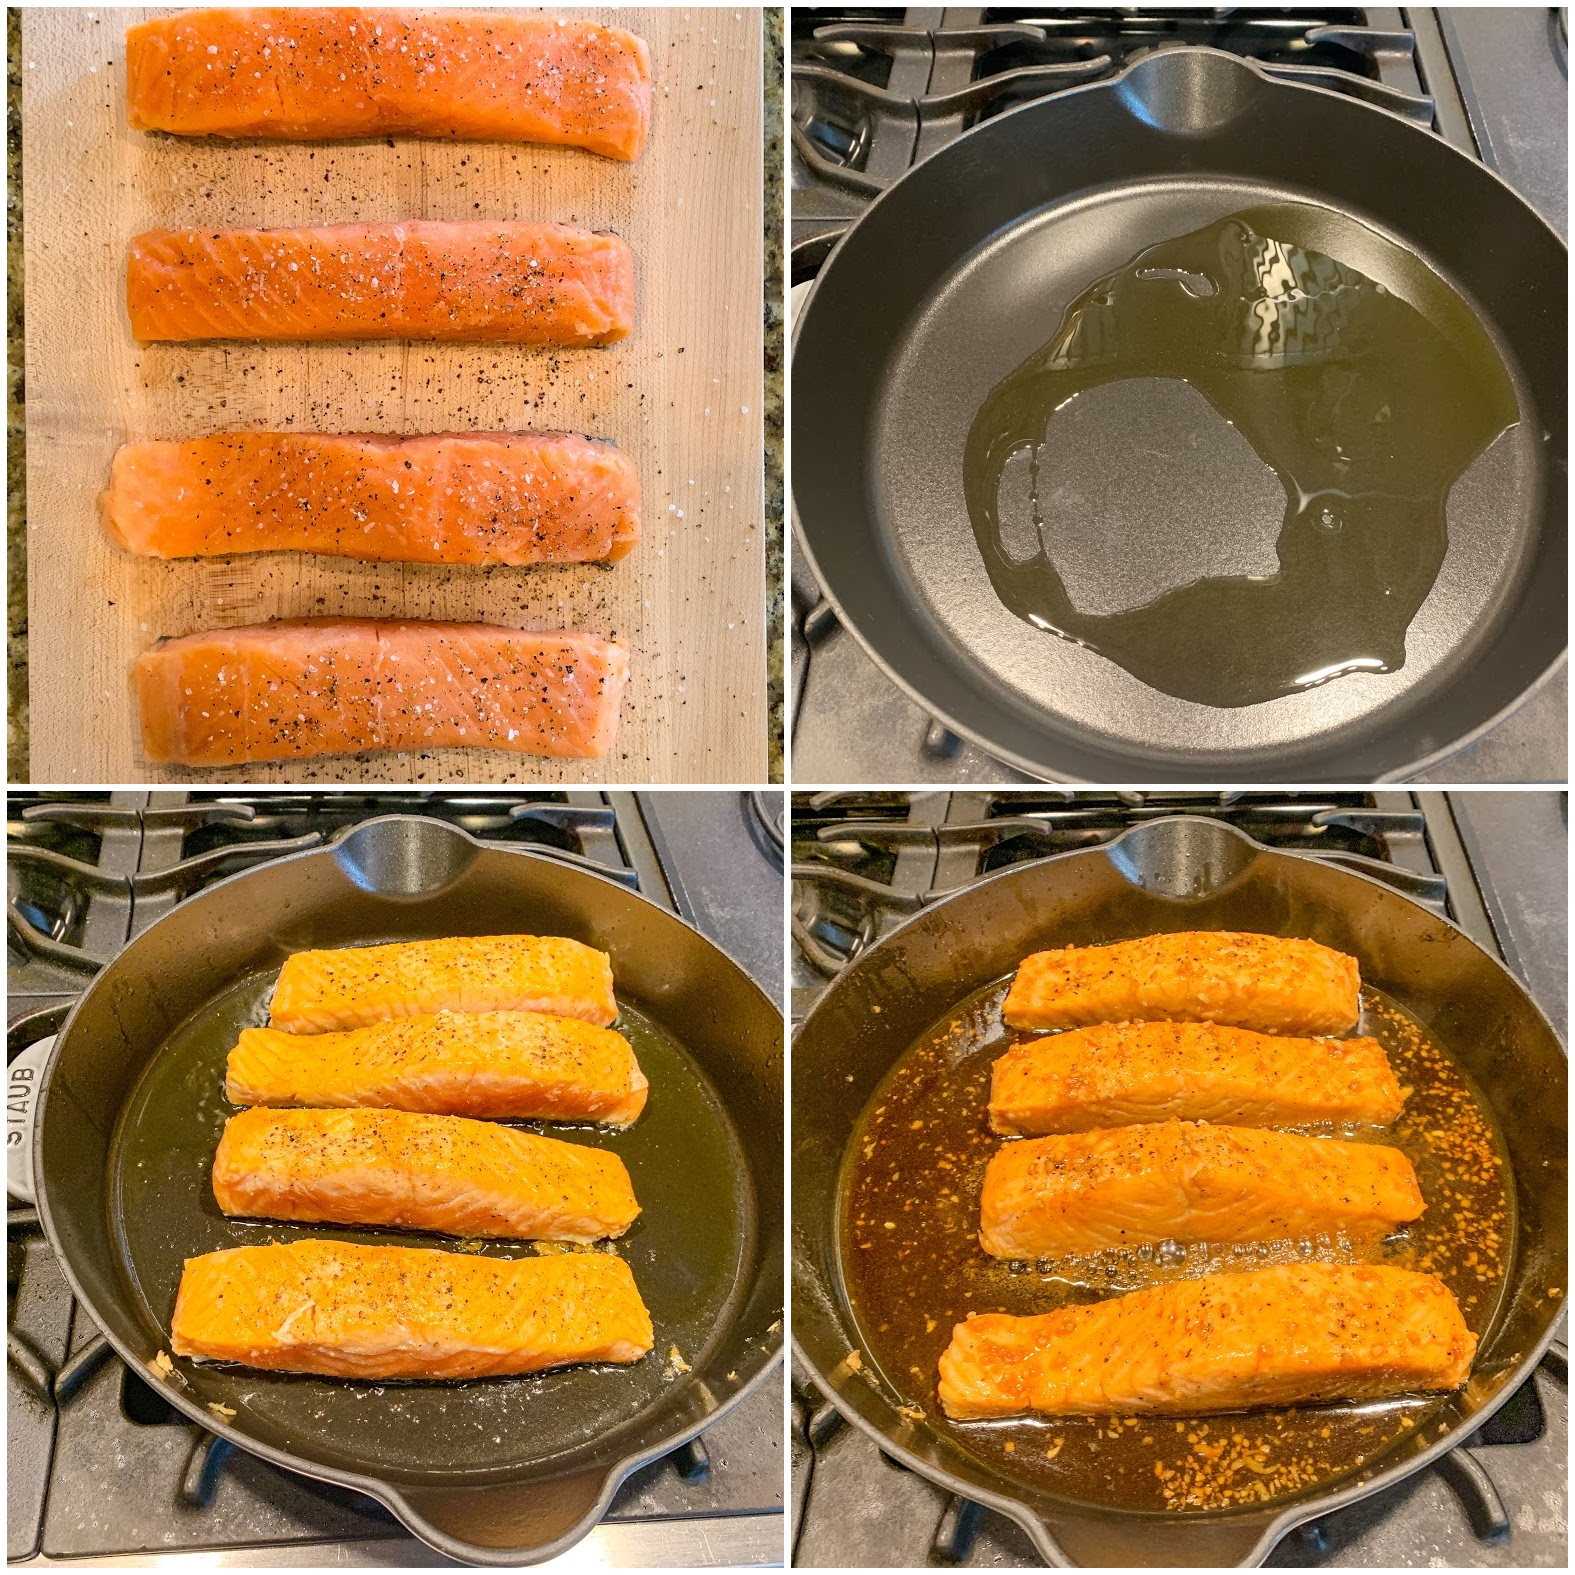 Image shows steps needed to cook salmon. Four salmon fillets in a cast iron skillet.